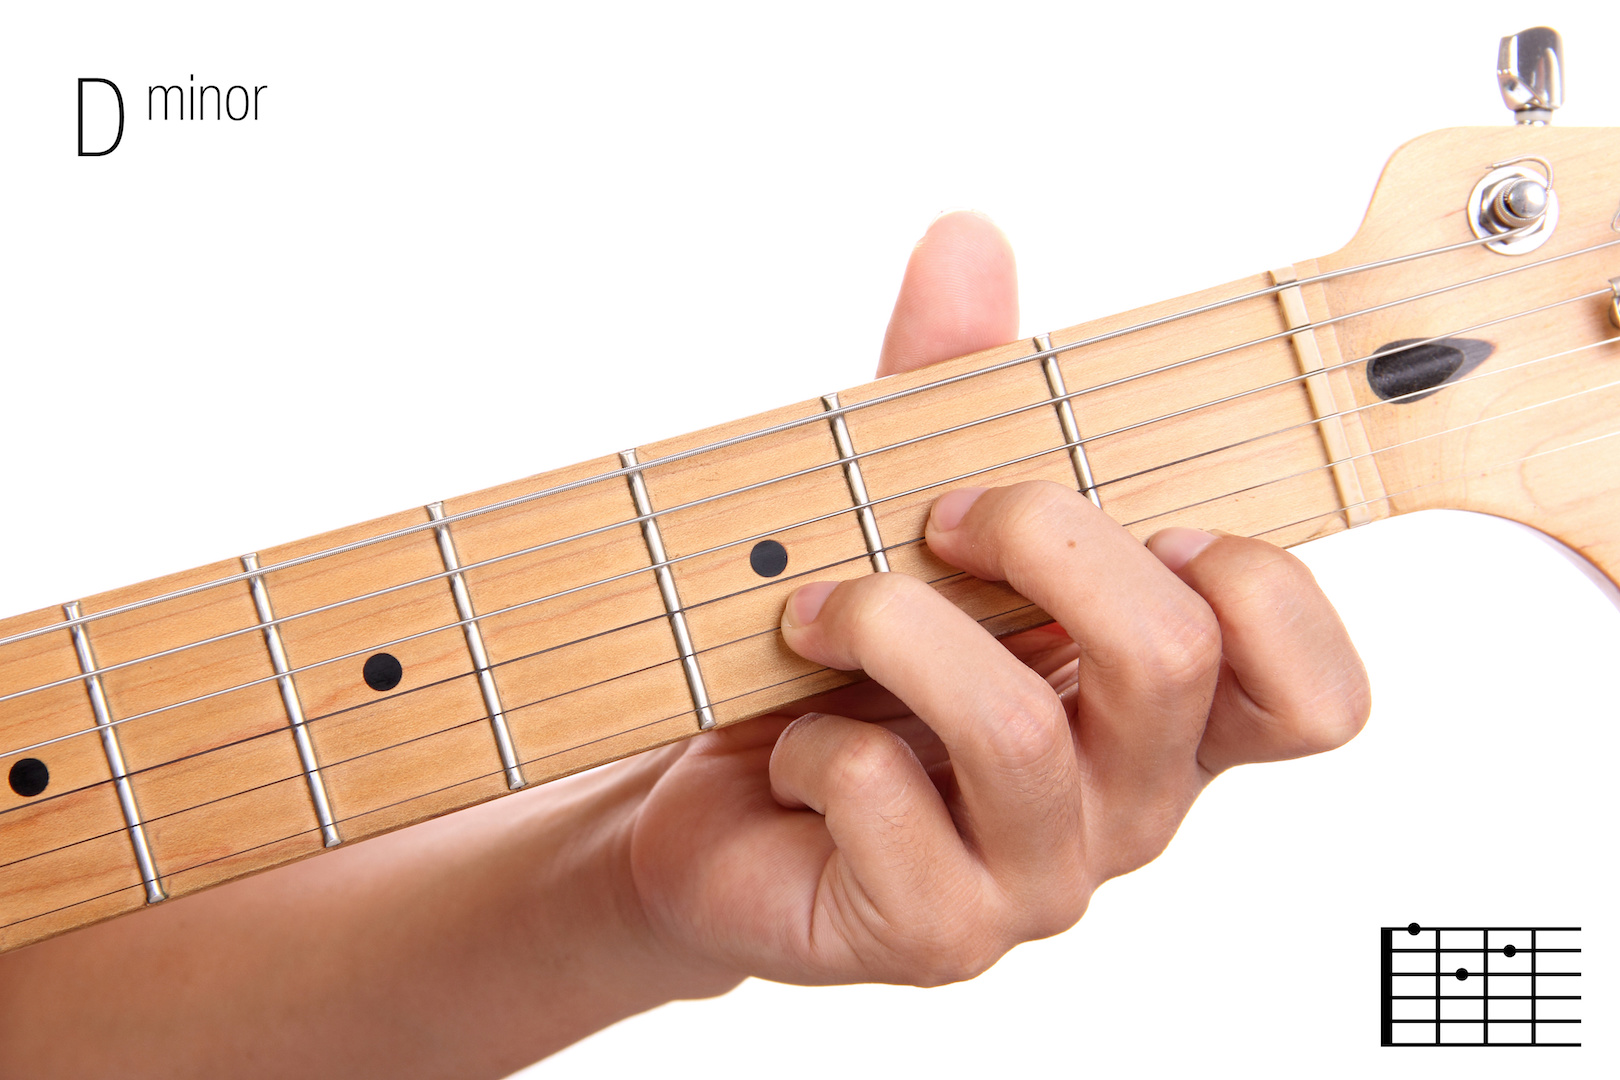 D Minor Chord on Guitar Scale, Popular Songs Videos